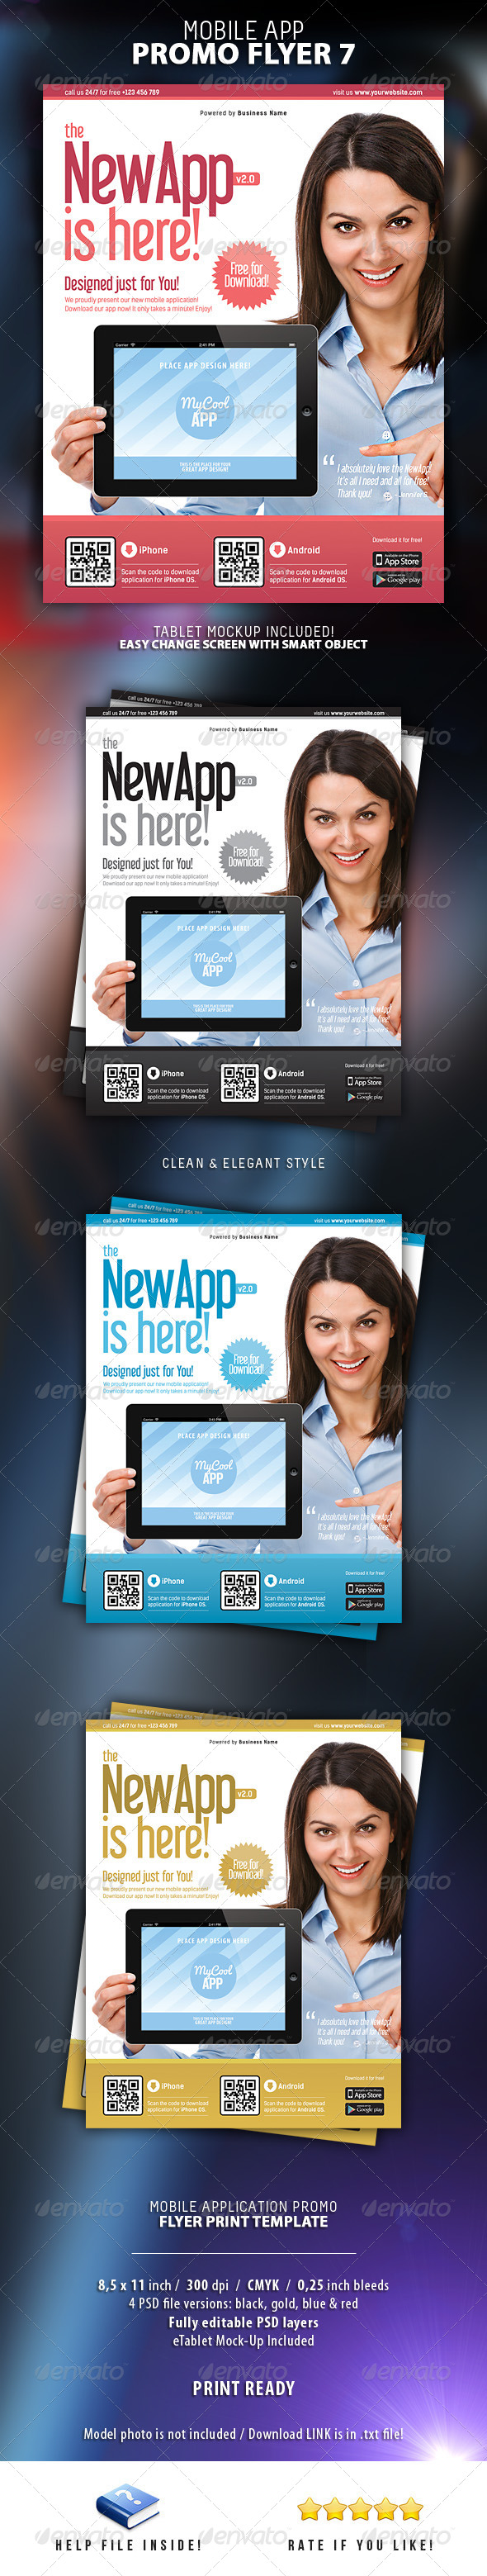 Mobile App Flyer Print Template 7 - Flyers Print Templates